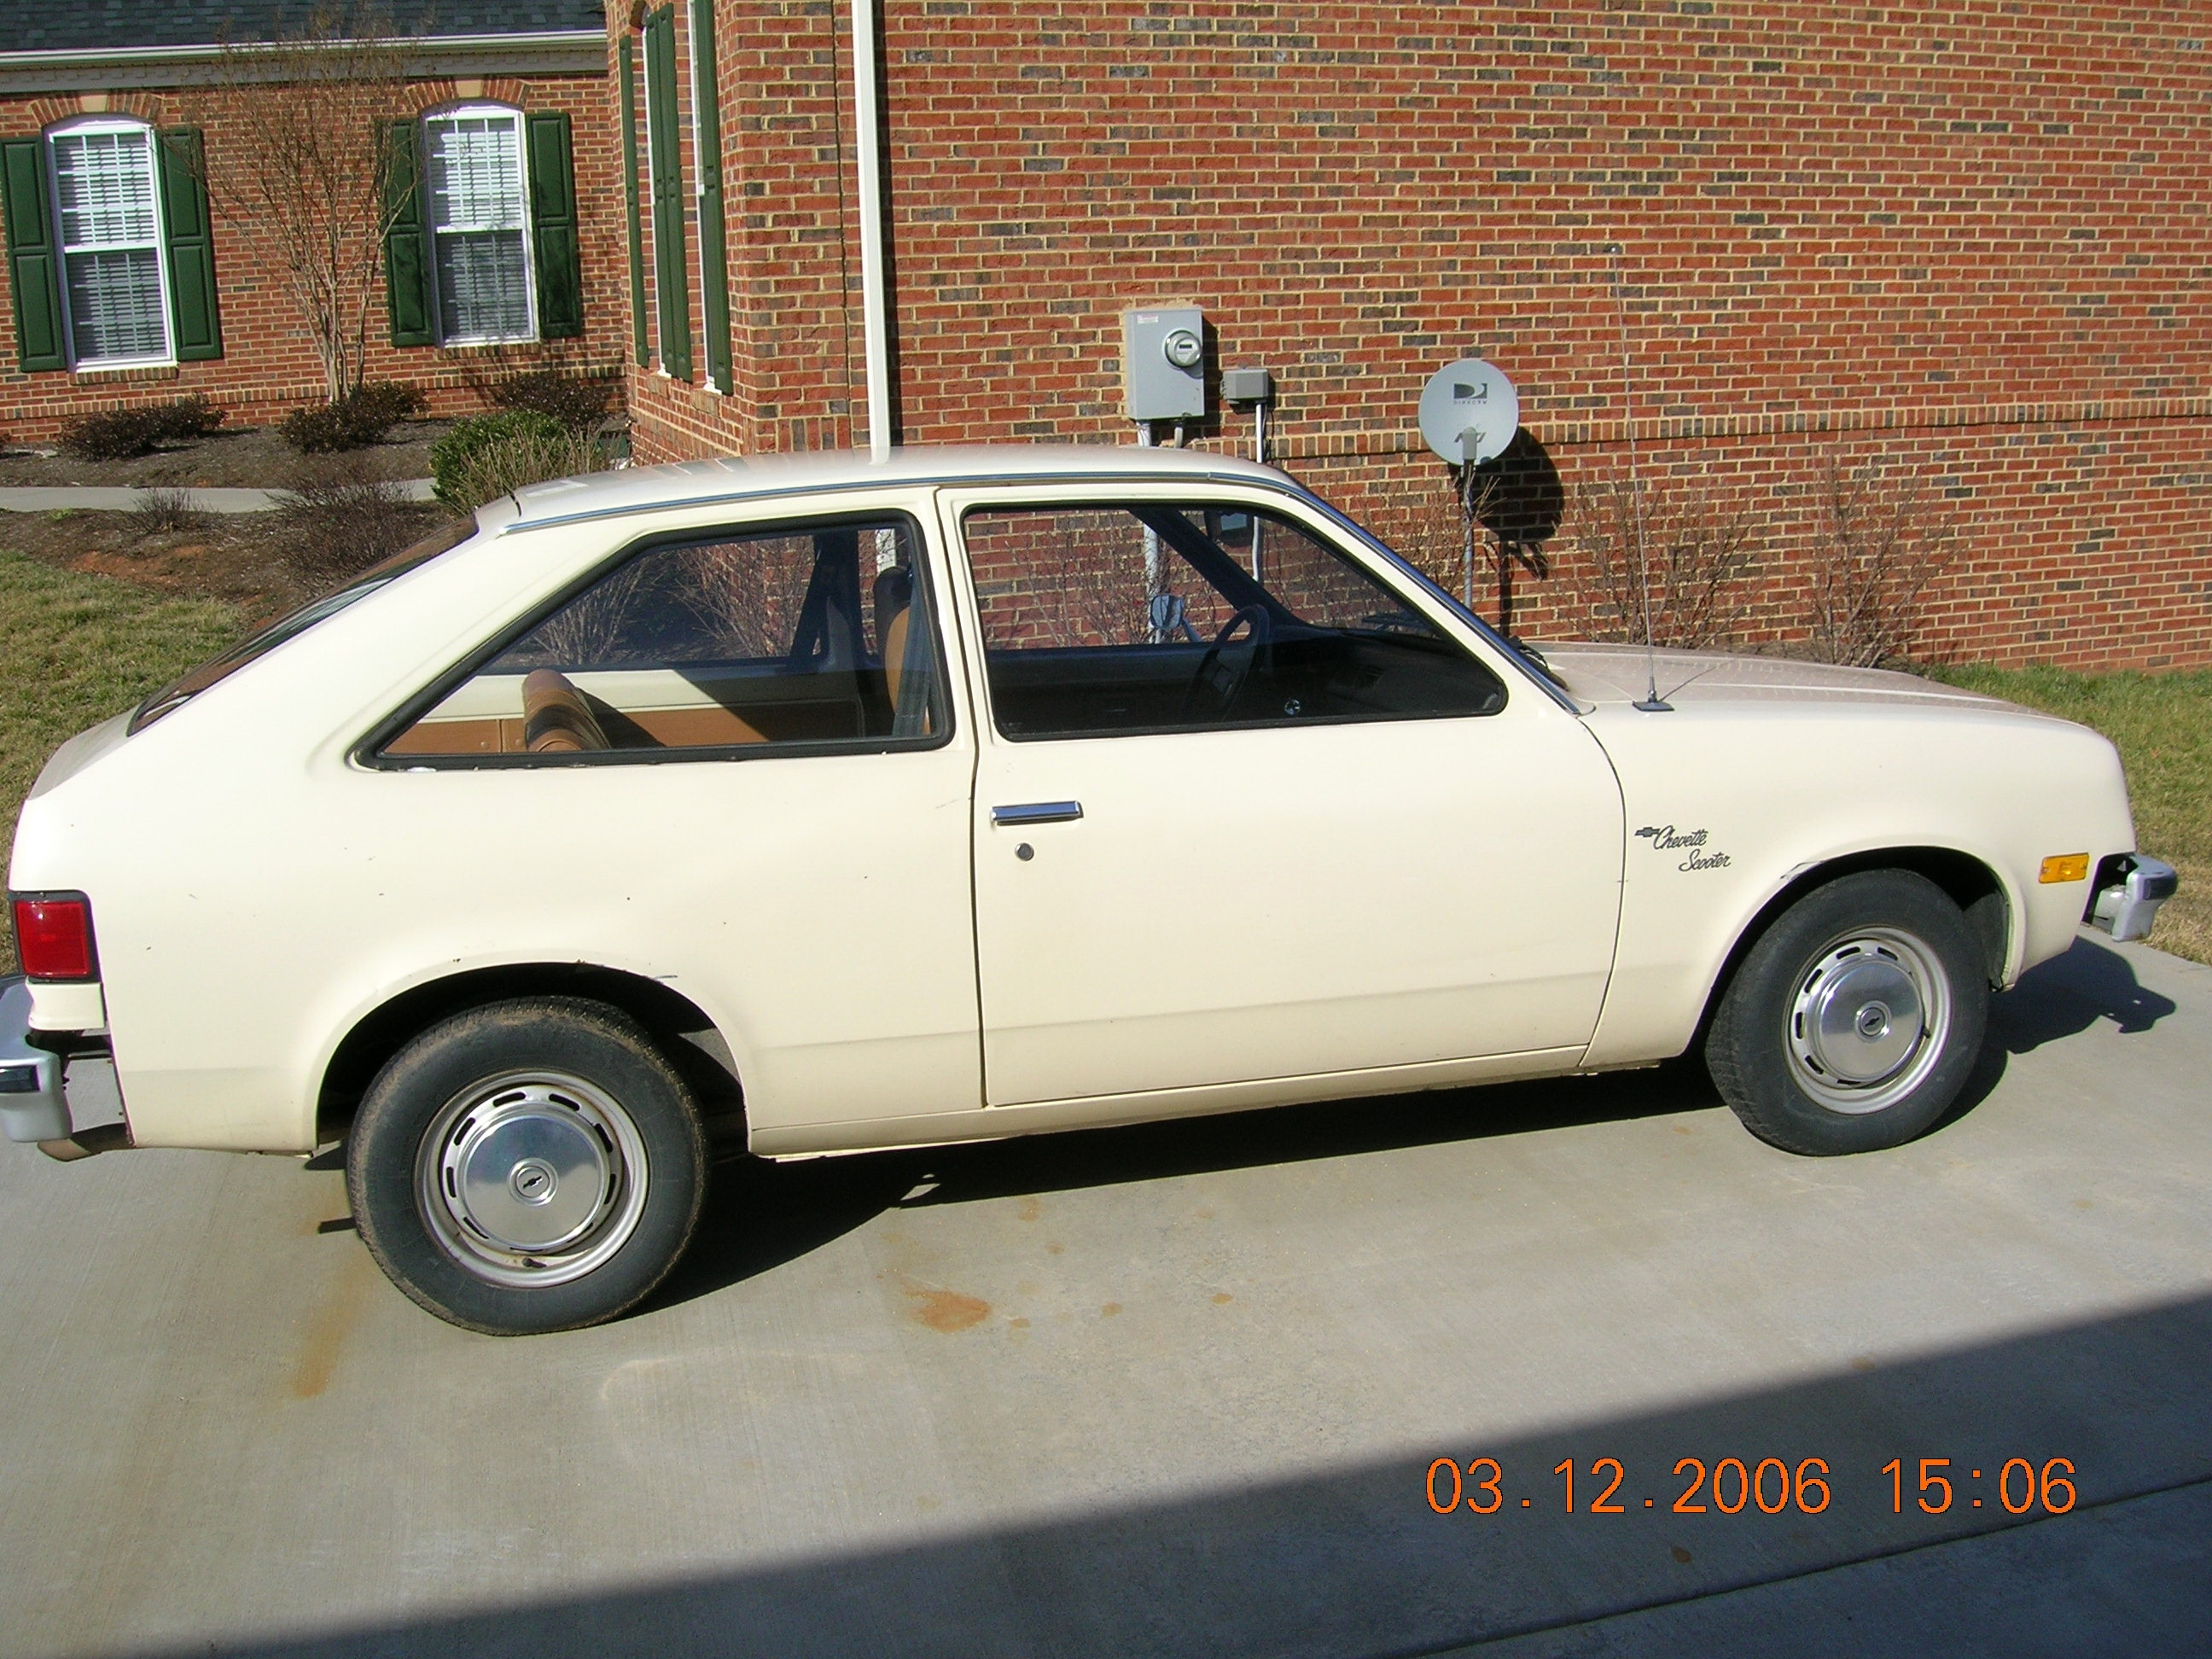 358vette 1980 chevrolet chevette s photo gallery at cardomain cardomain